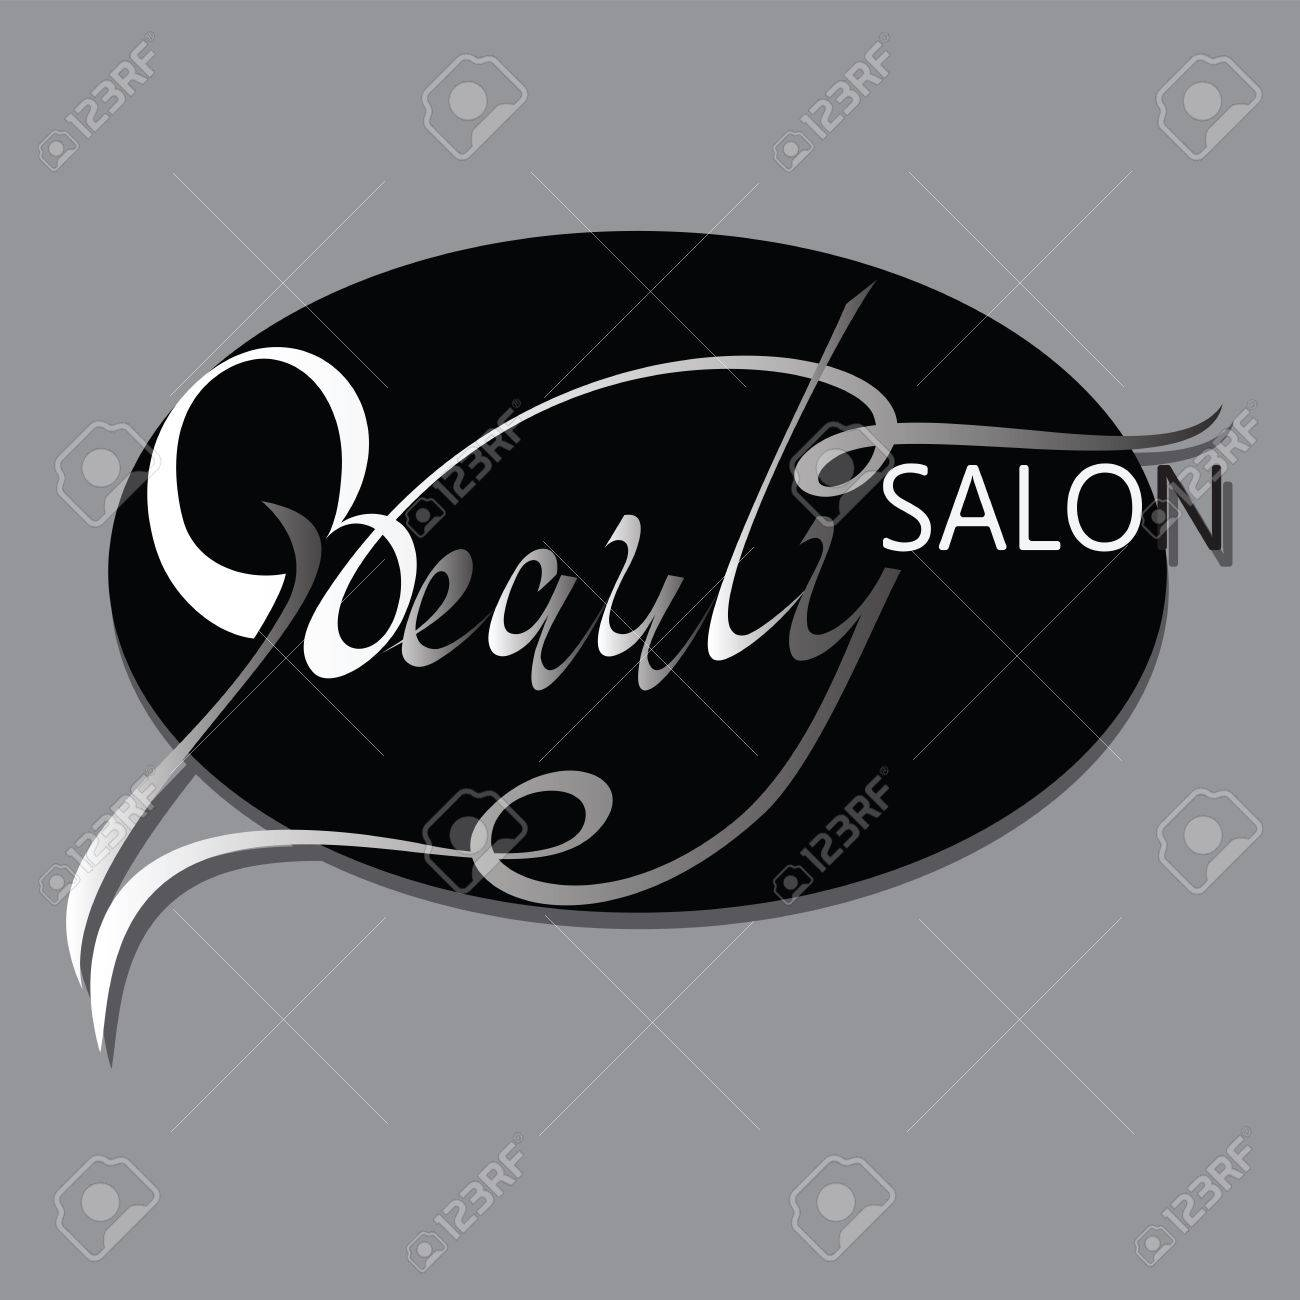 BEAUTY SALON Logo Design Hand Drawn Text Phrase Decorative In Oval